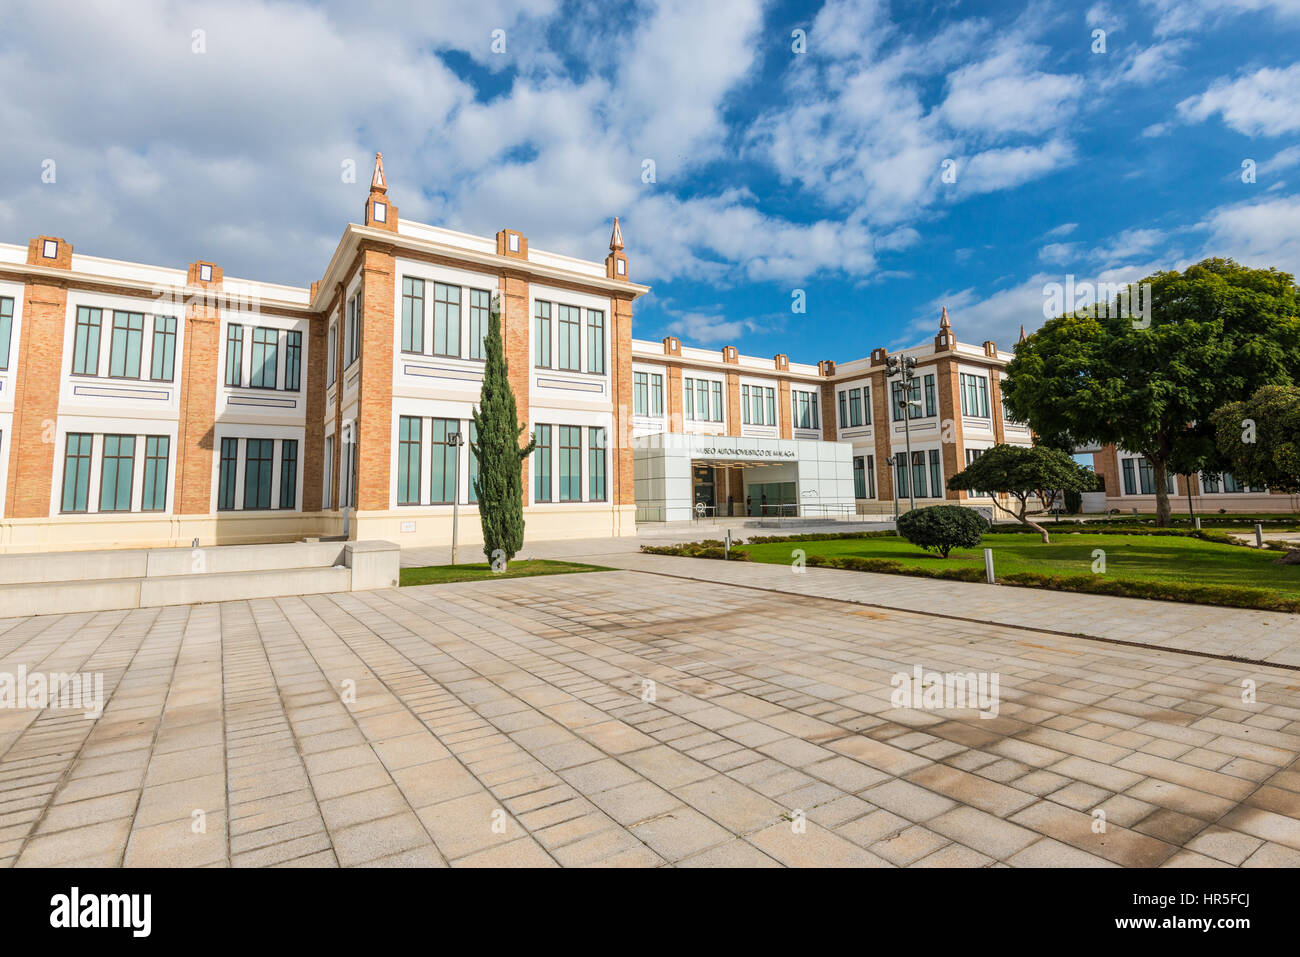 Malaga, Spain - December 07, 2016: Automobile Museum in Malaga, Spain. An amazing collection of vintage cars and - Stock Image